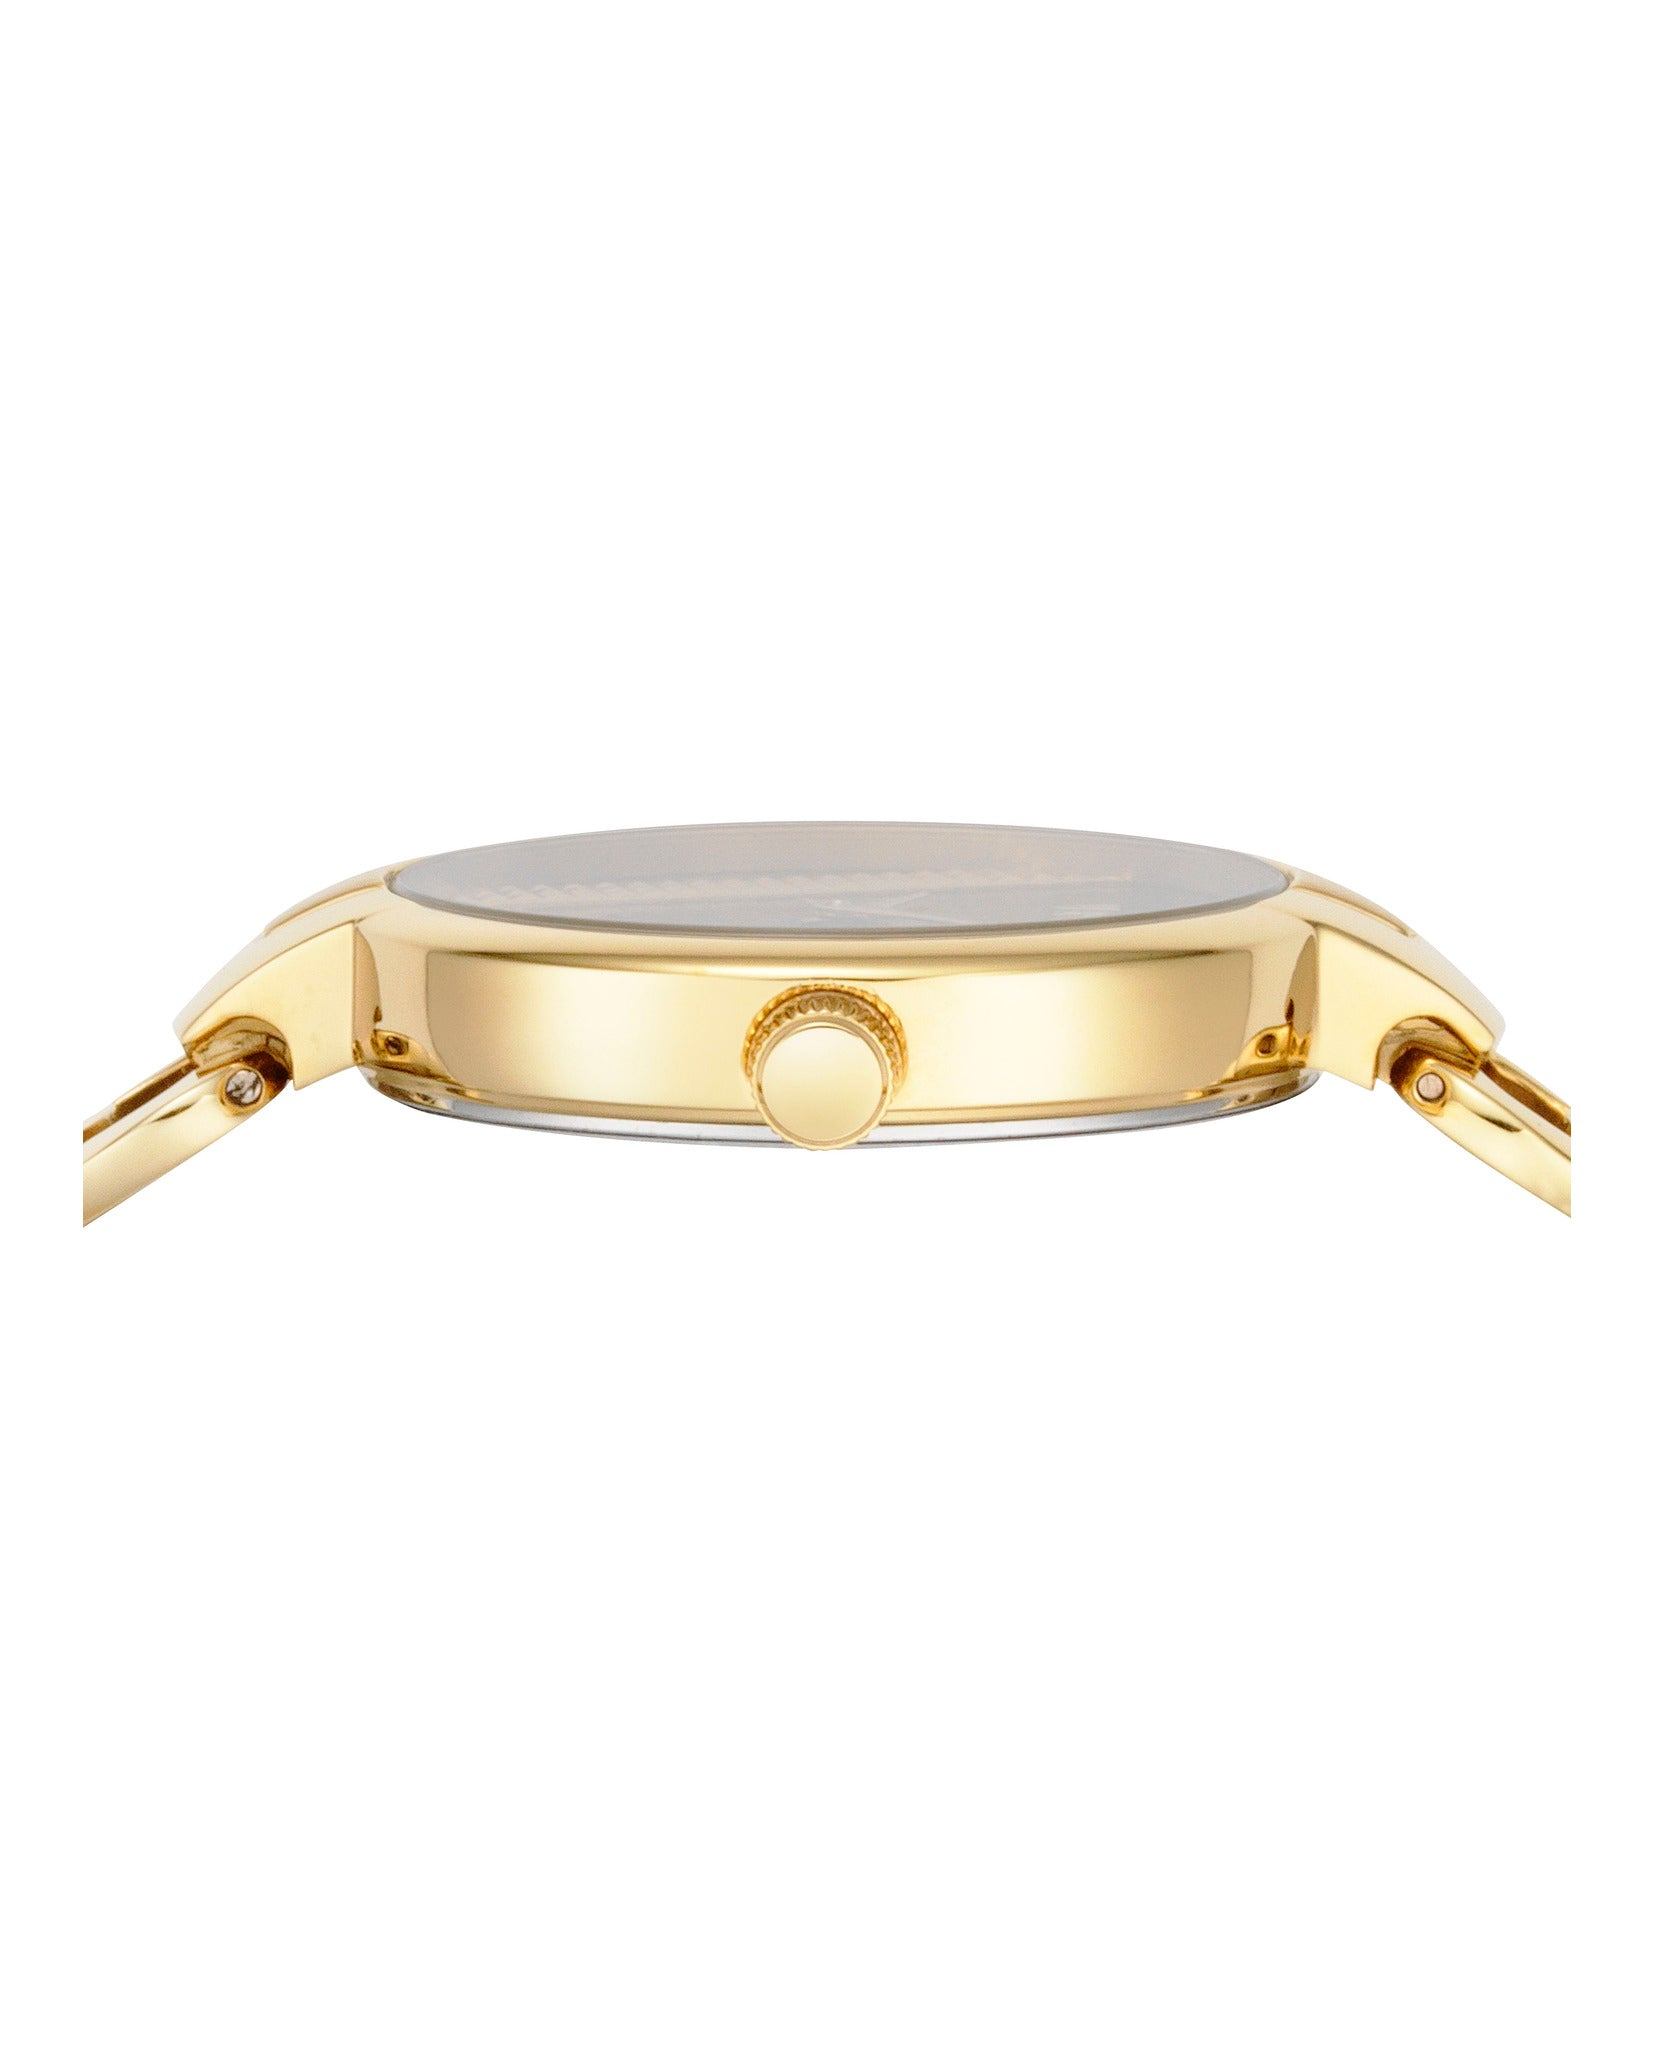 Saint Germain Bracelet Watch